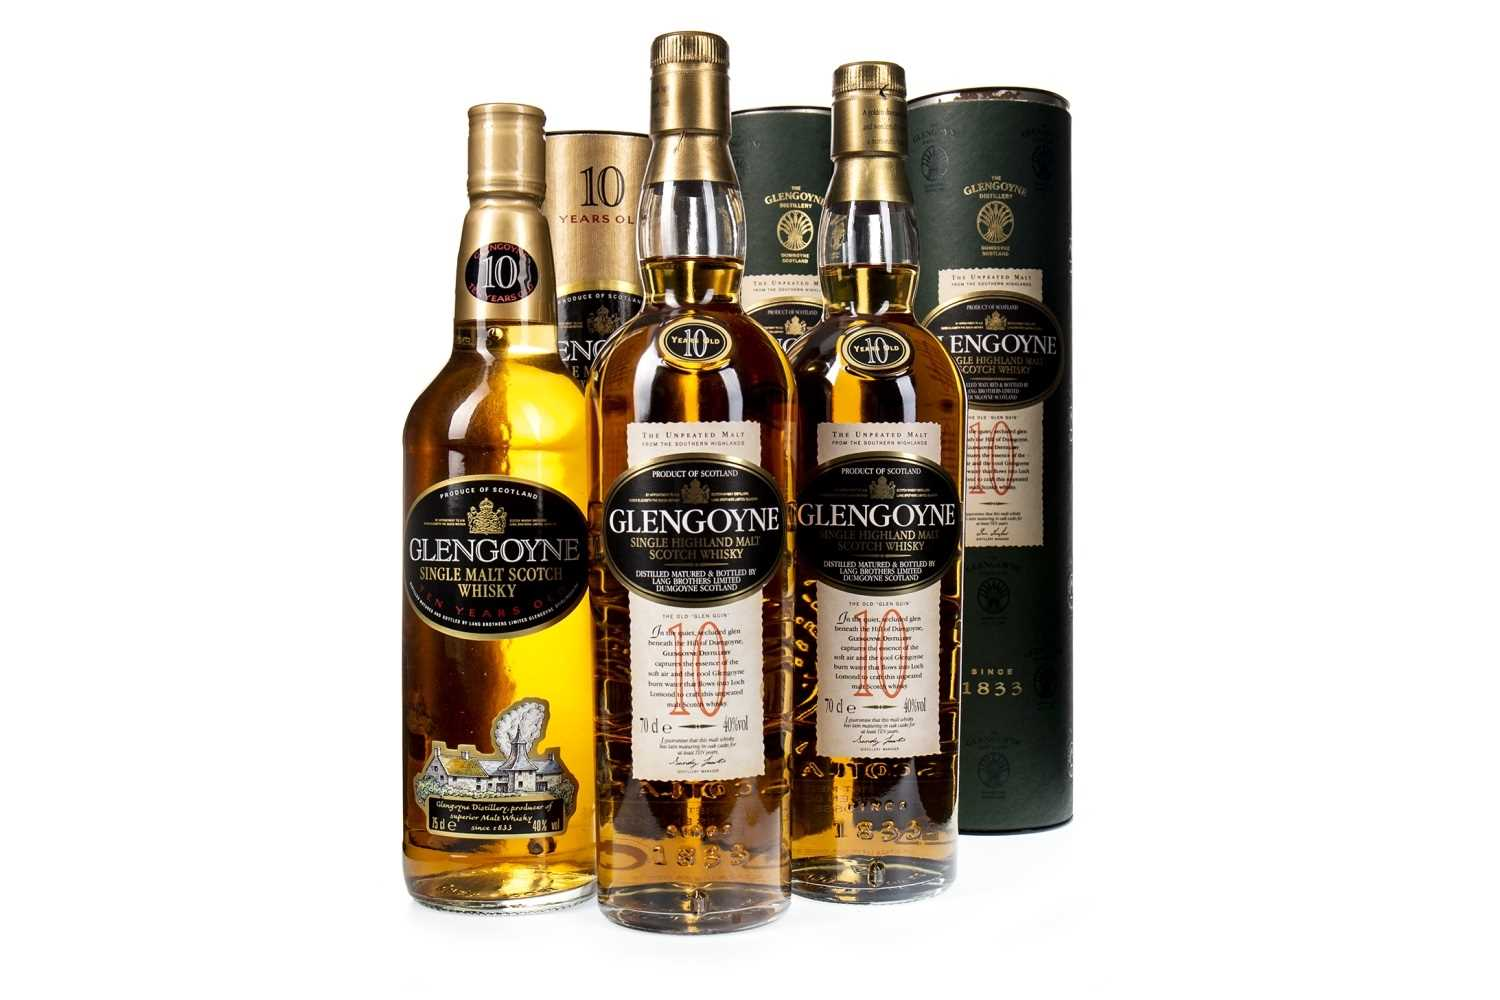 Lot 309-THREE BOTTLES OF GLENGOYNE 10 YEARS OLD